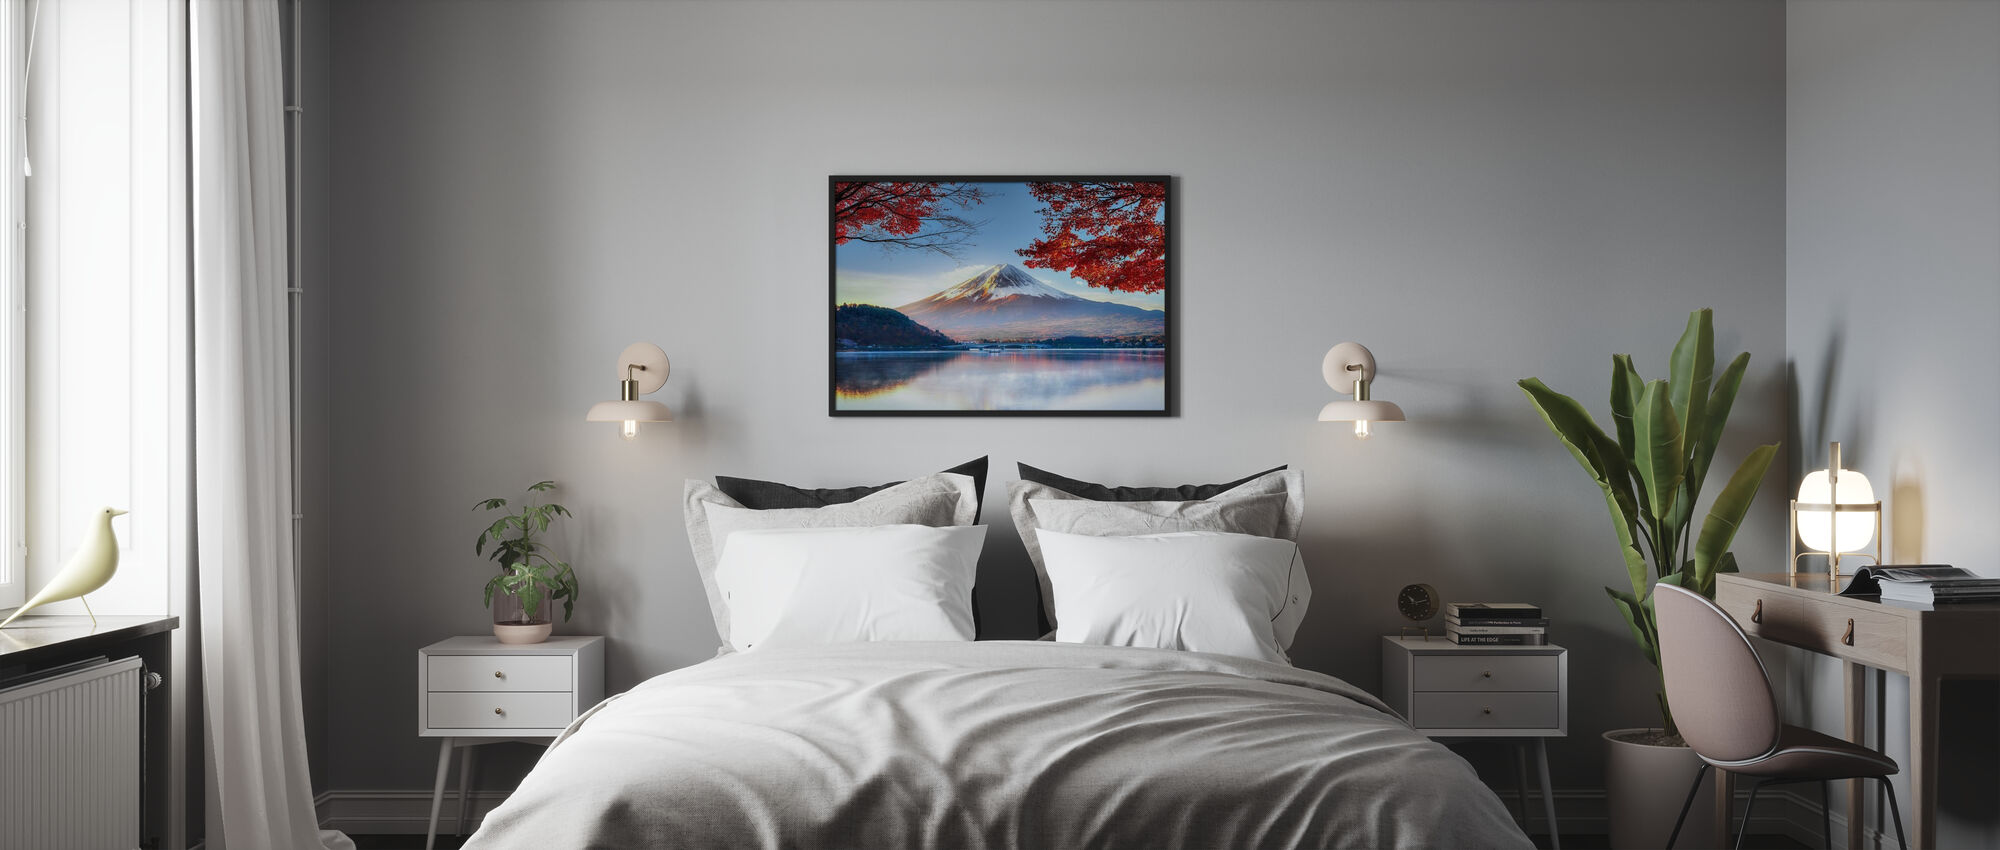 Fuji Mountain in Autumn - Poster - Bedroom